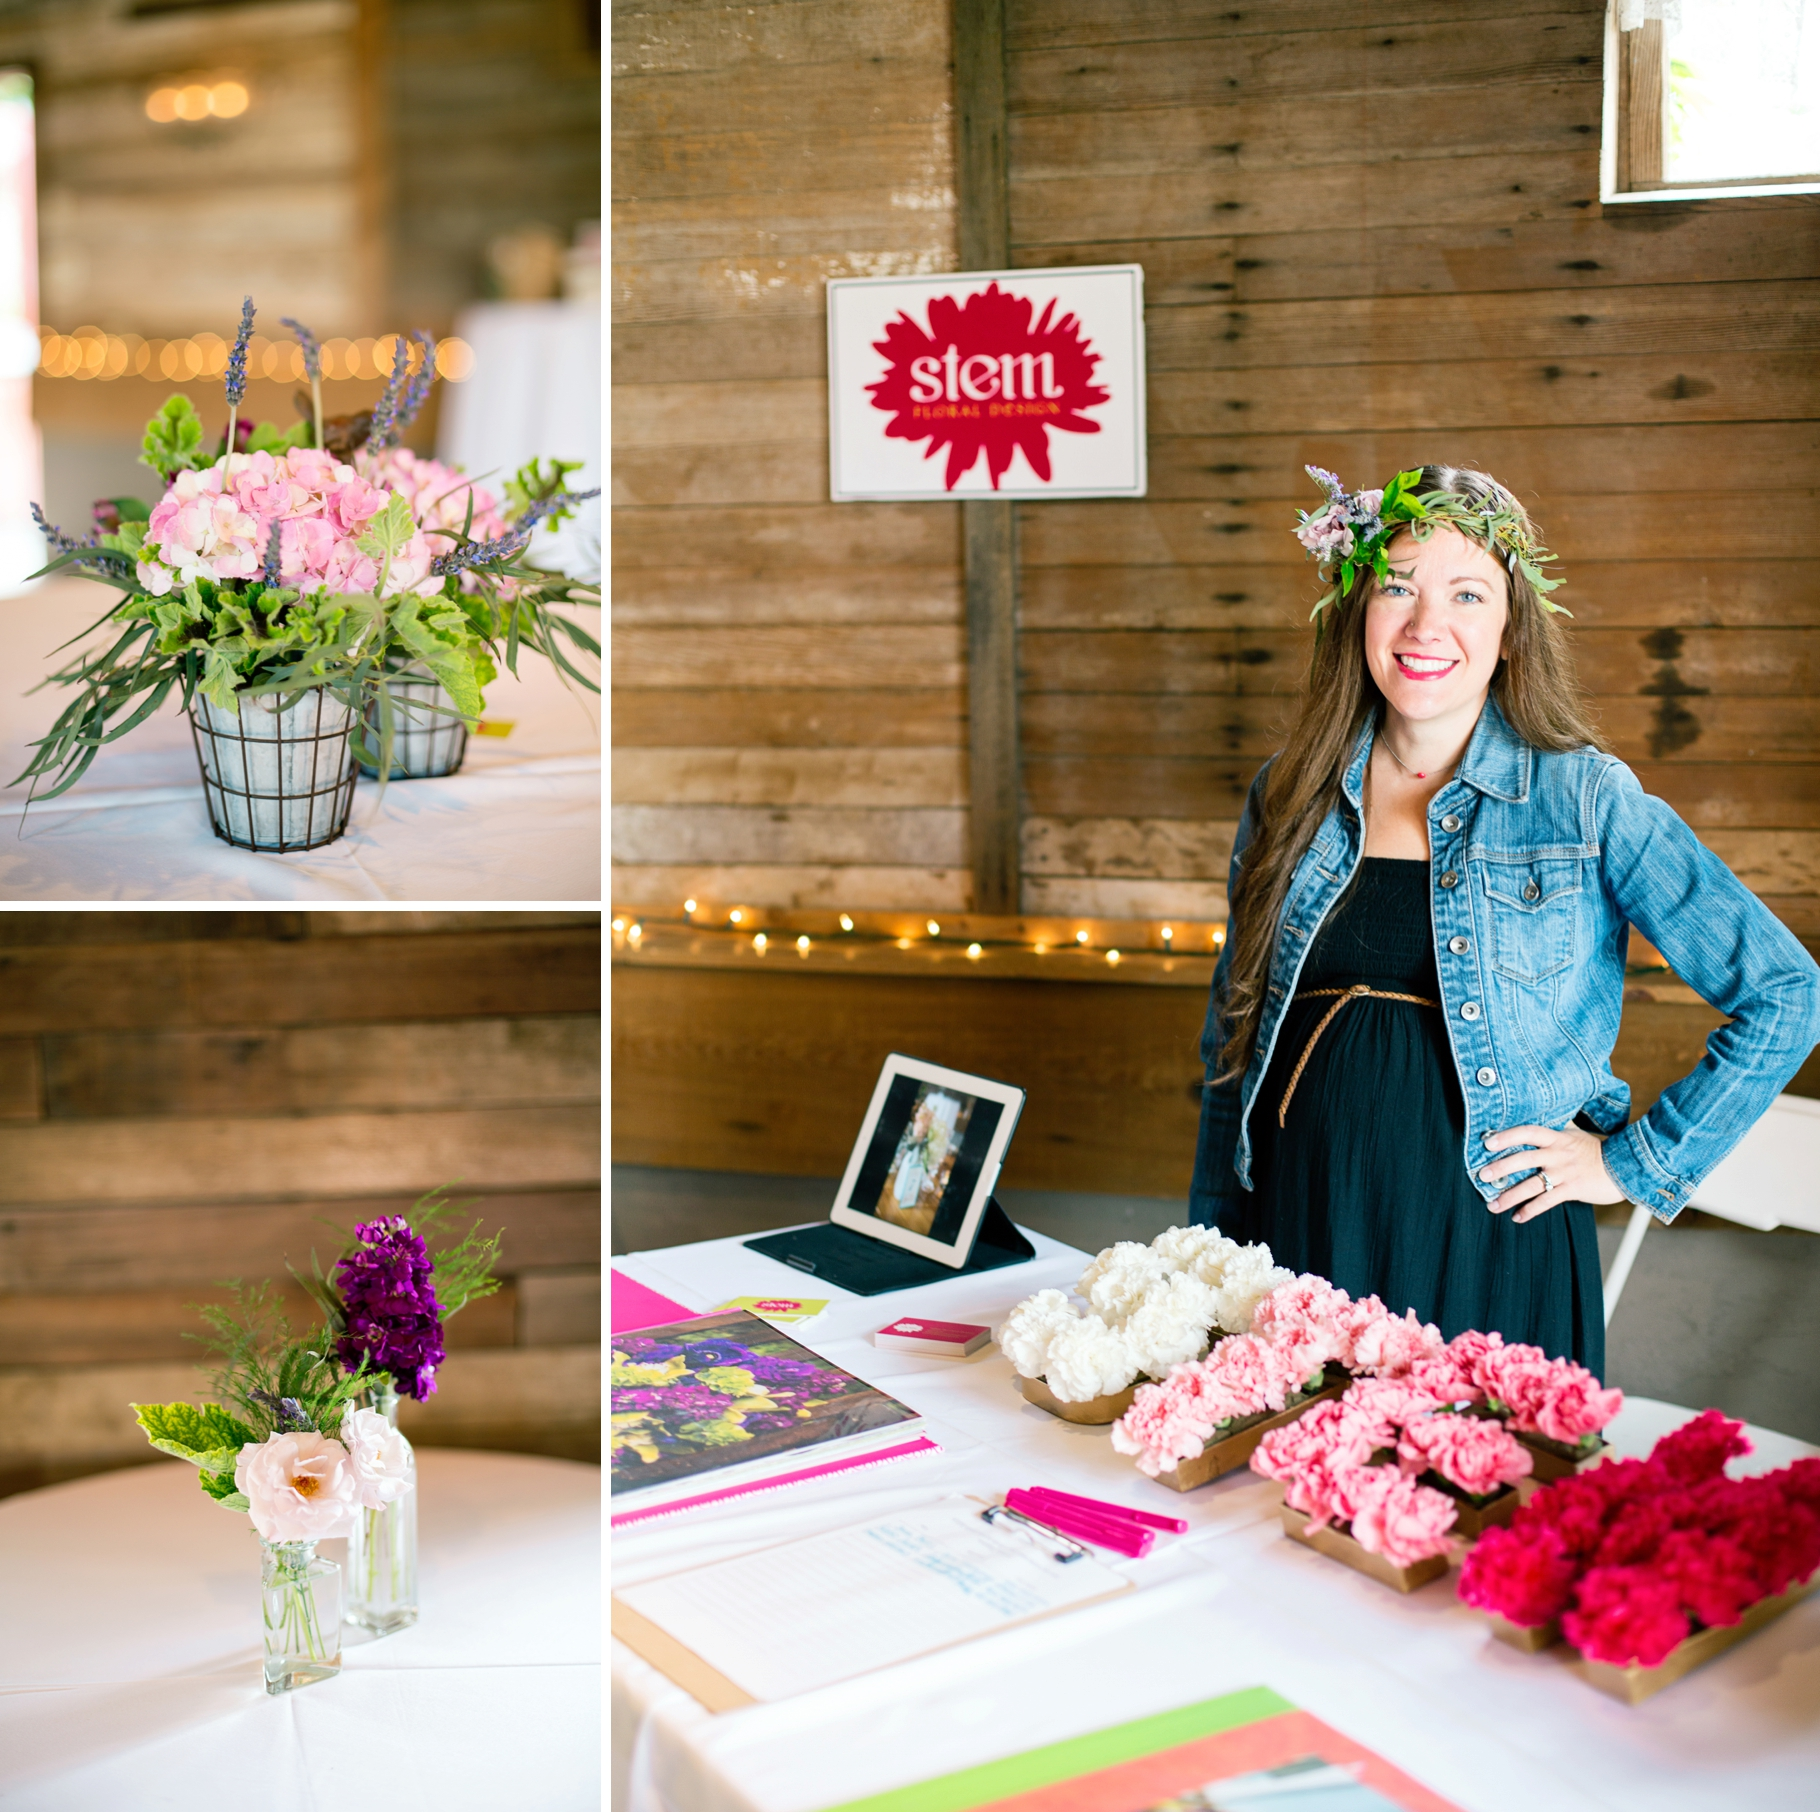 13-Craven-Farm-Stem-Foral-Design-Wedding-Bouquet-Rustic-Flowers-Countryside-Snohomish-Wedding-Tour-Seattle-Photographer-Photography-by-Betty-Elaine